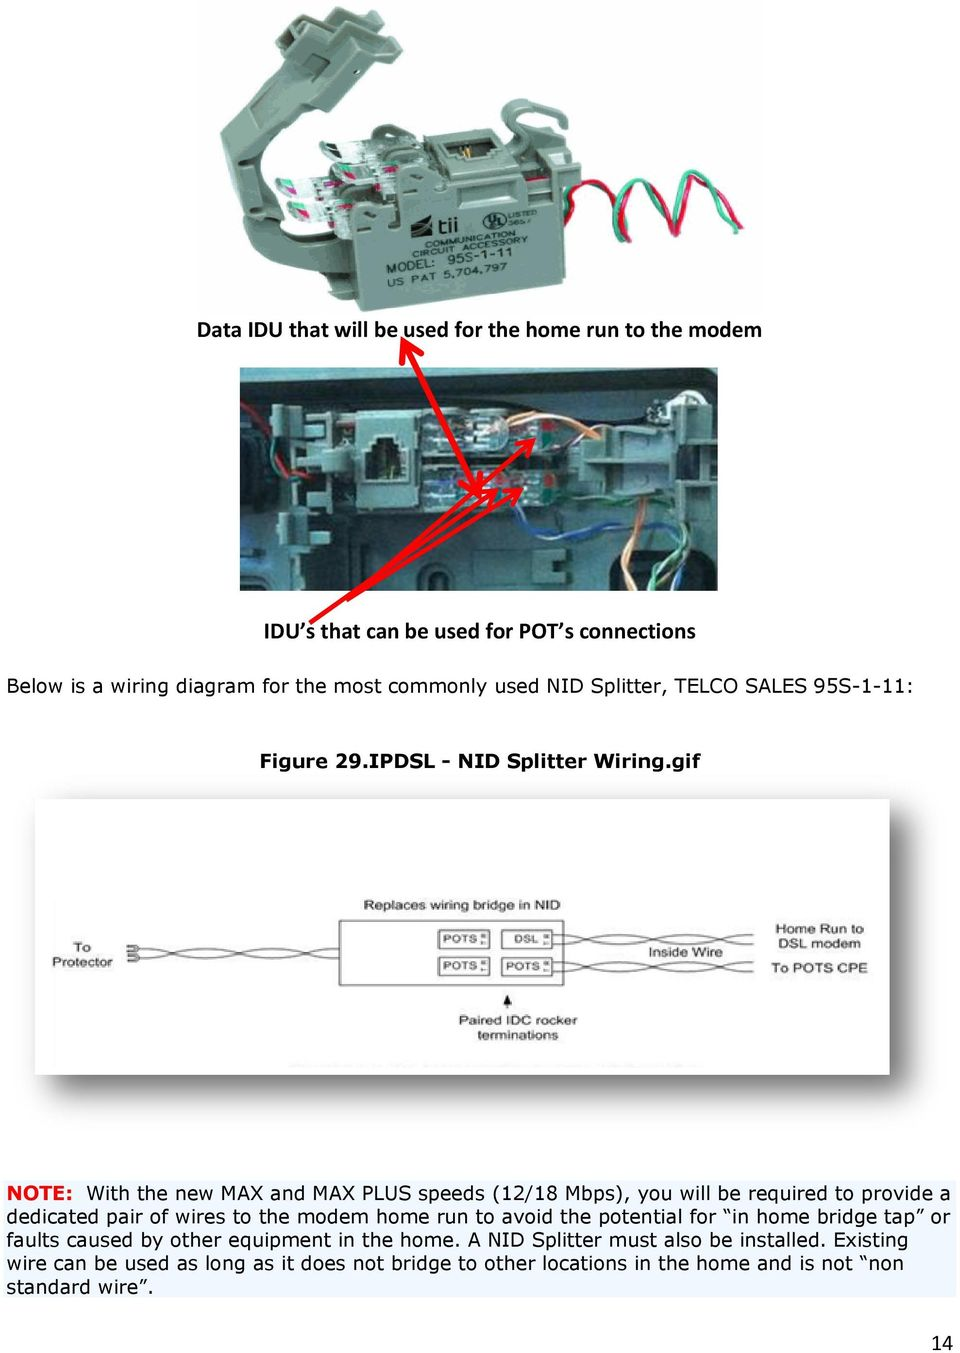 U Verse Ipdsl Hsia With Cvoip Pdf At T Dsl Work Wiring Diagram Gif Note The New Max And Plus Speeds 12 18 Mbps